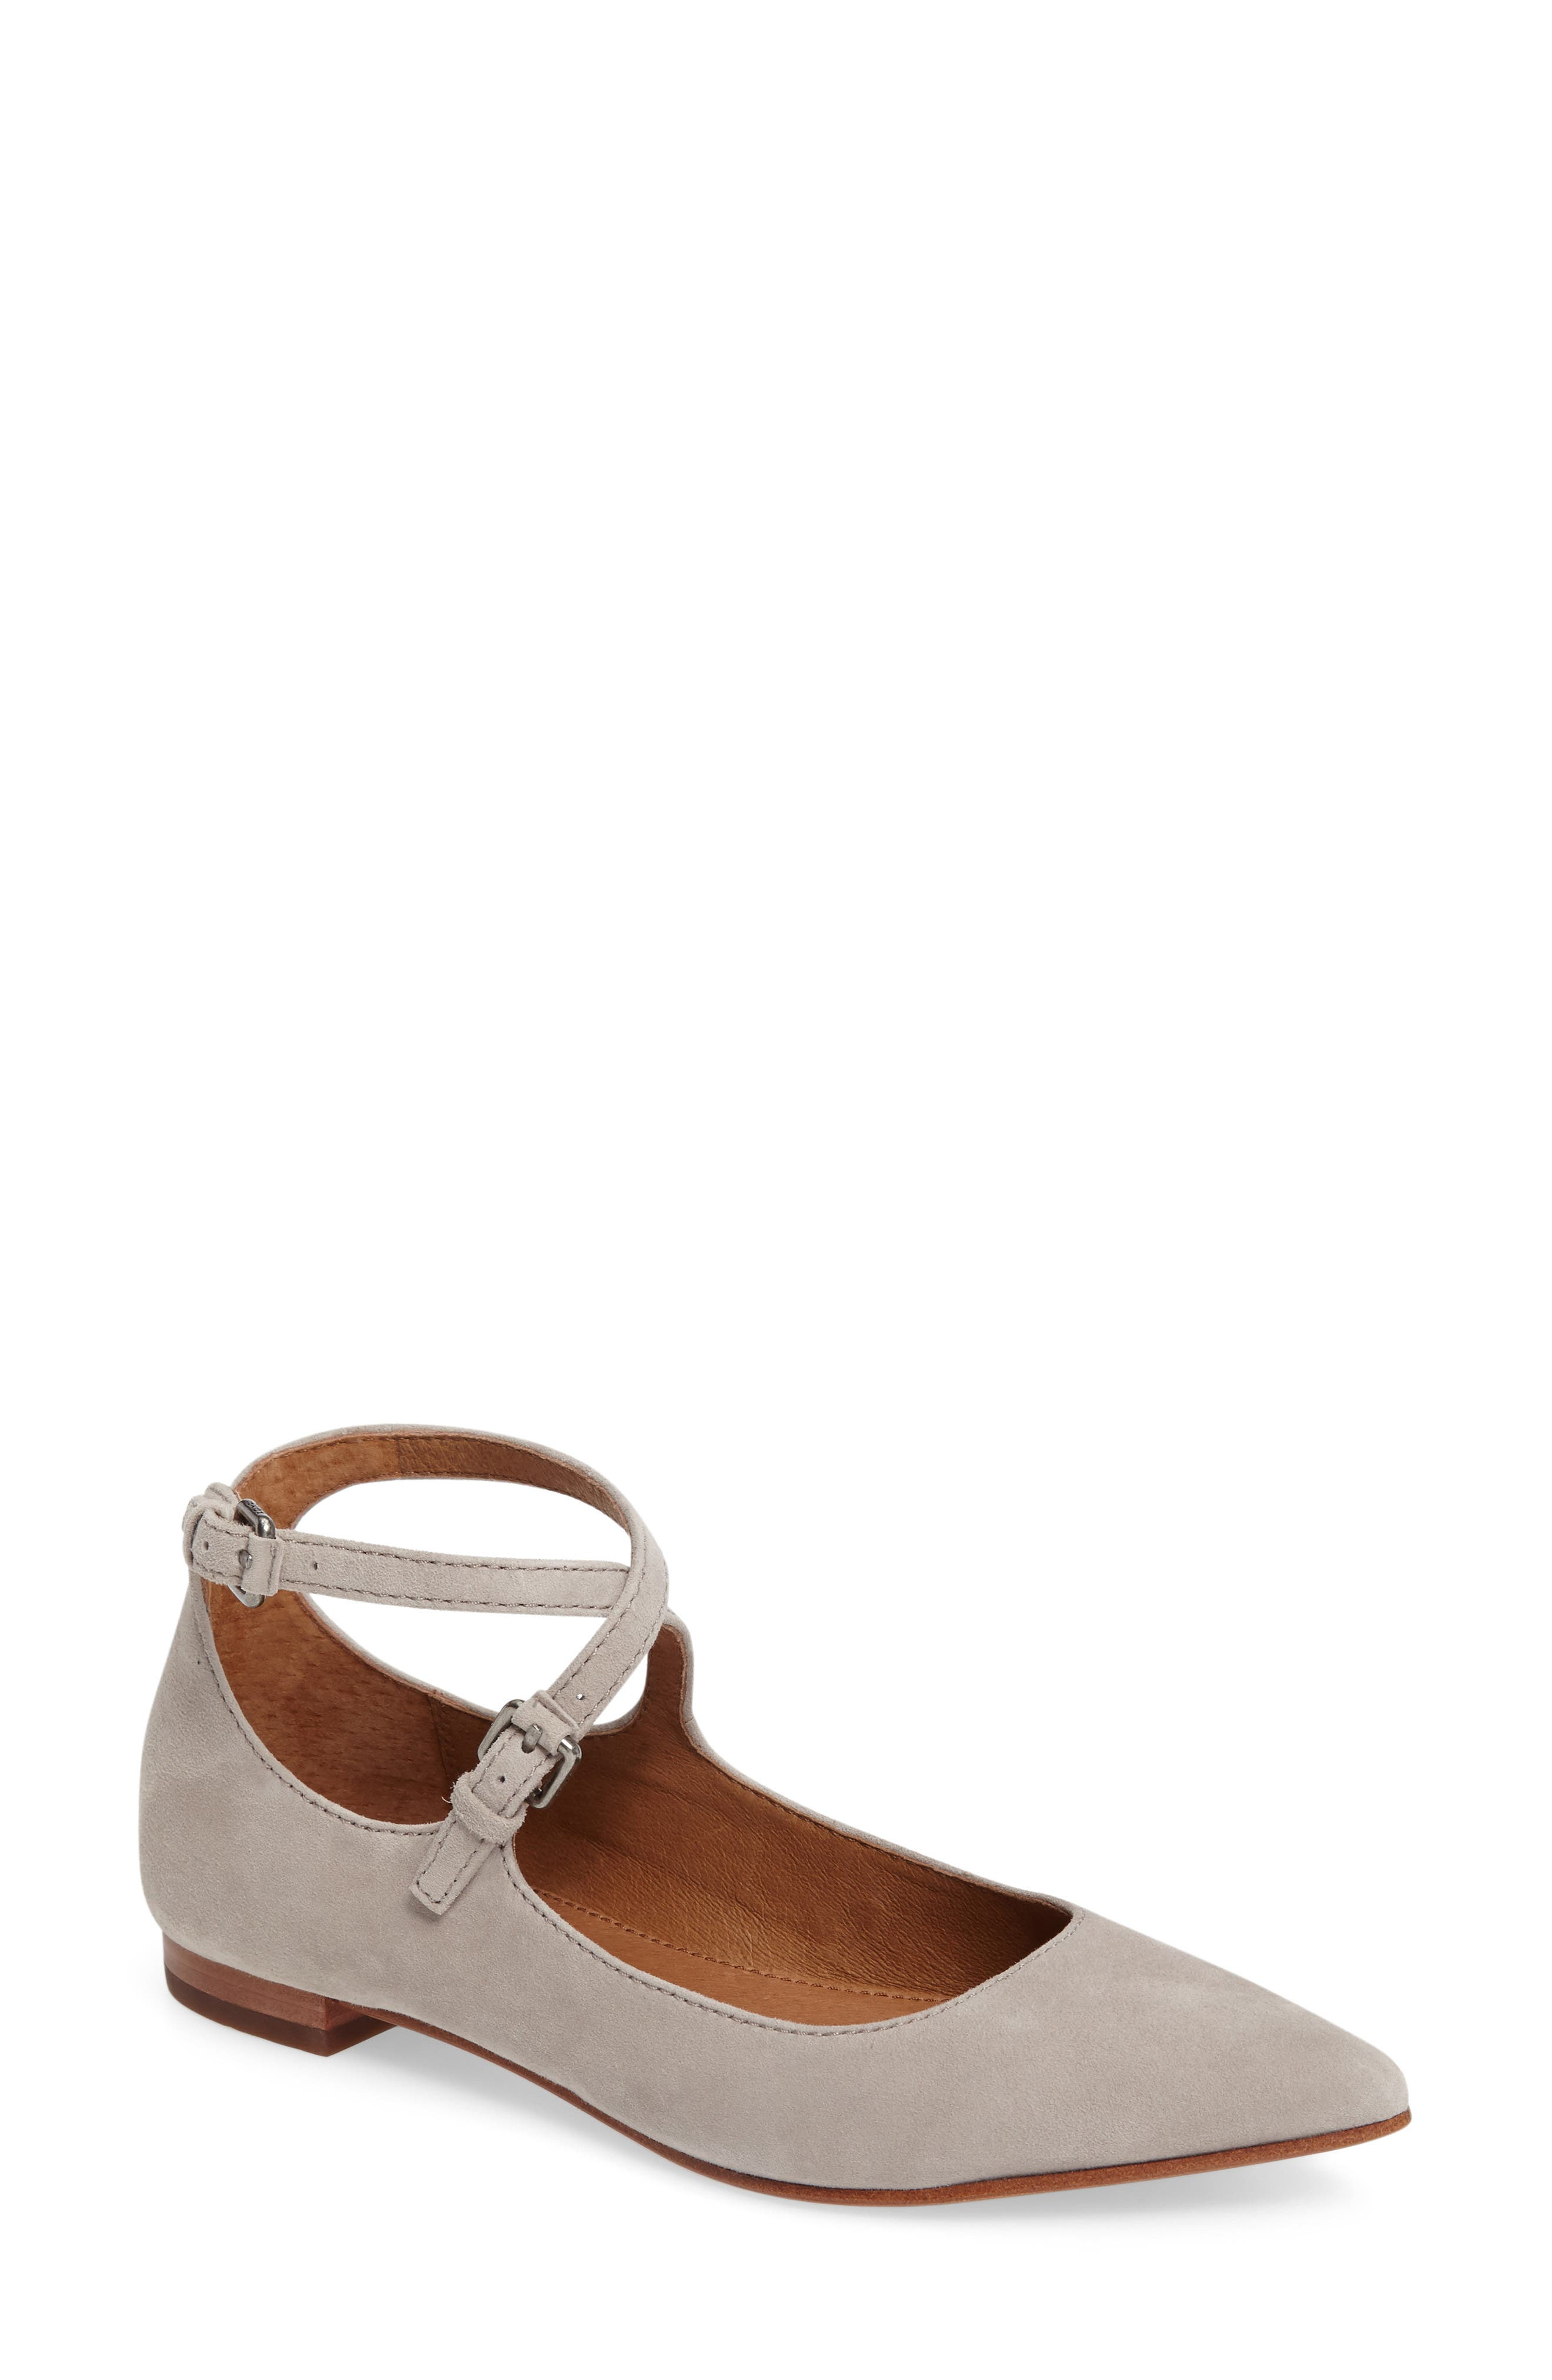 Sienna Cross Ballet Flat,                             Main thumbnail 2, color,